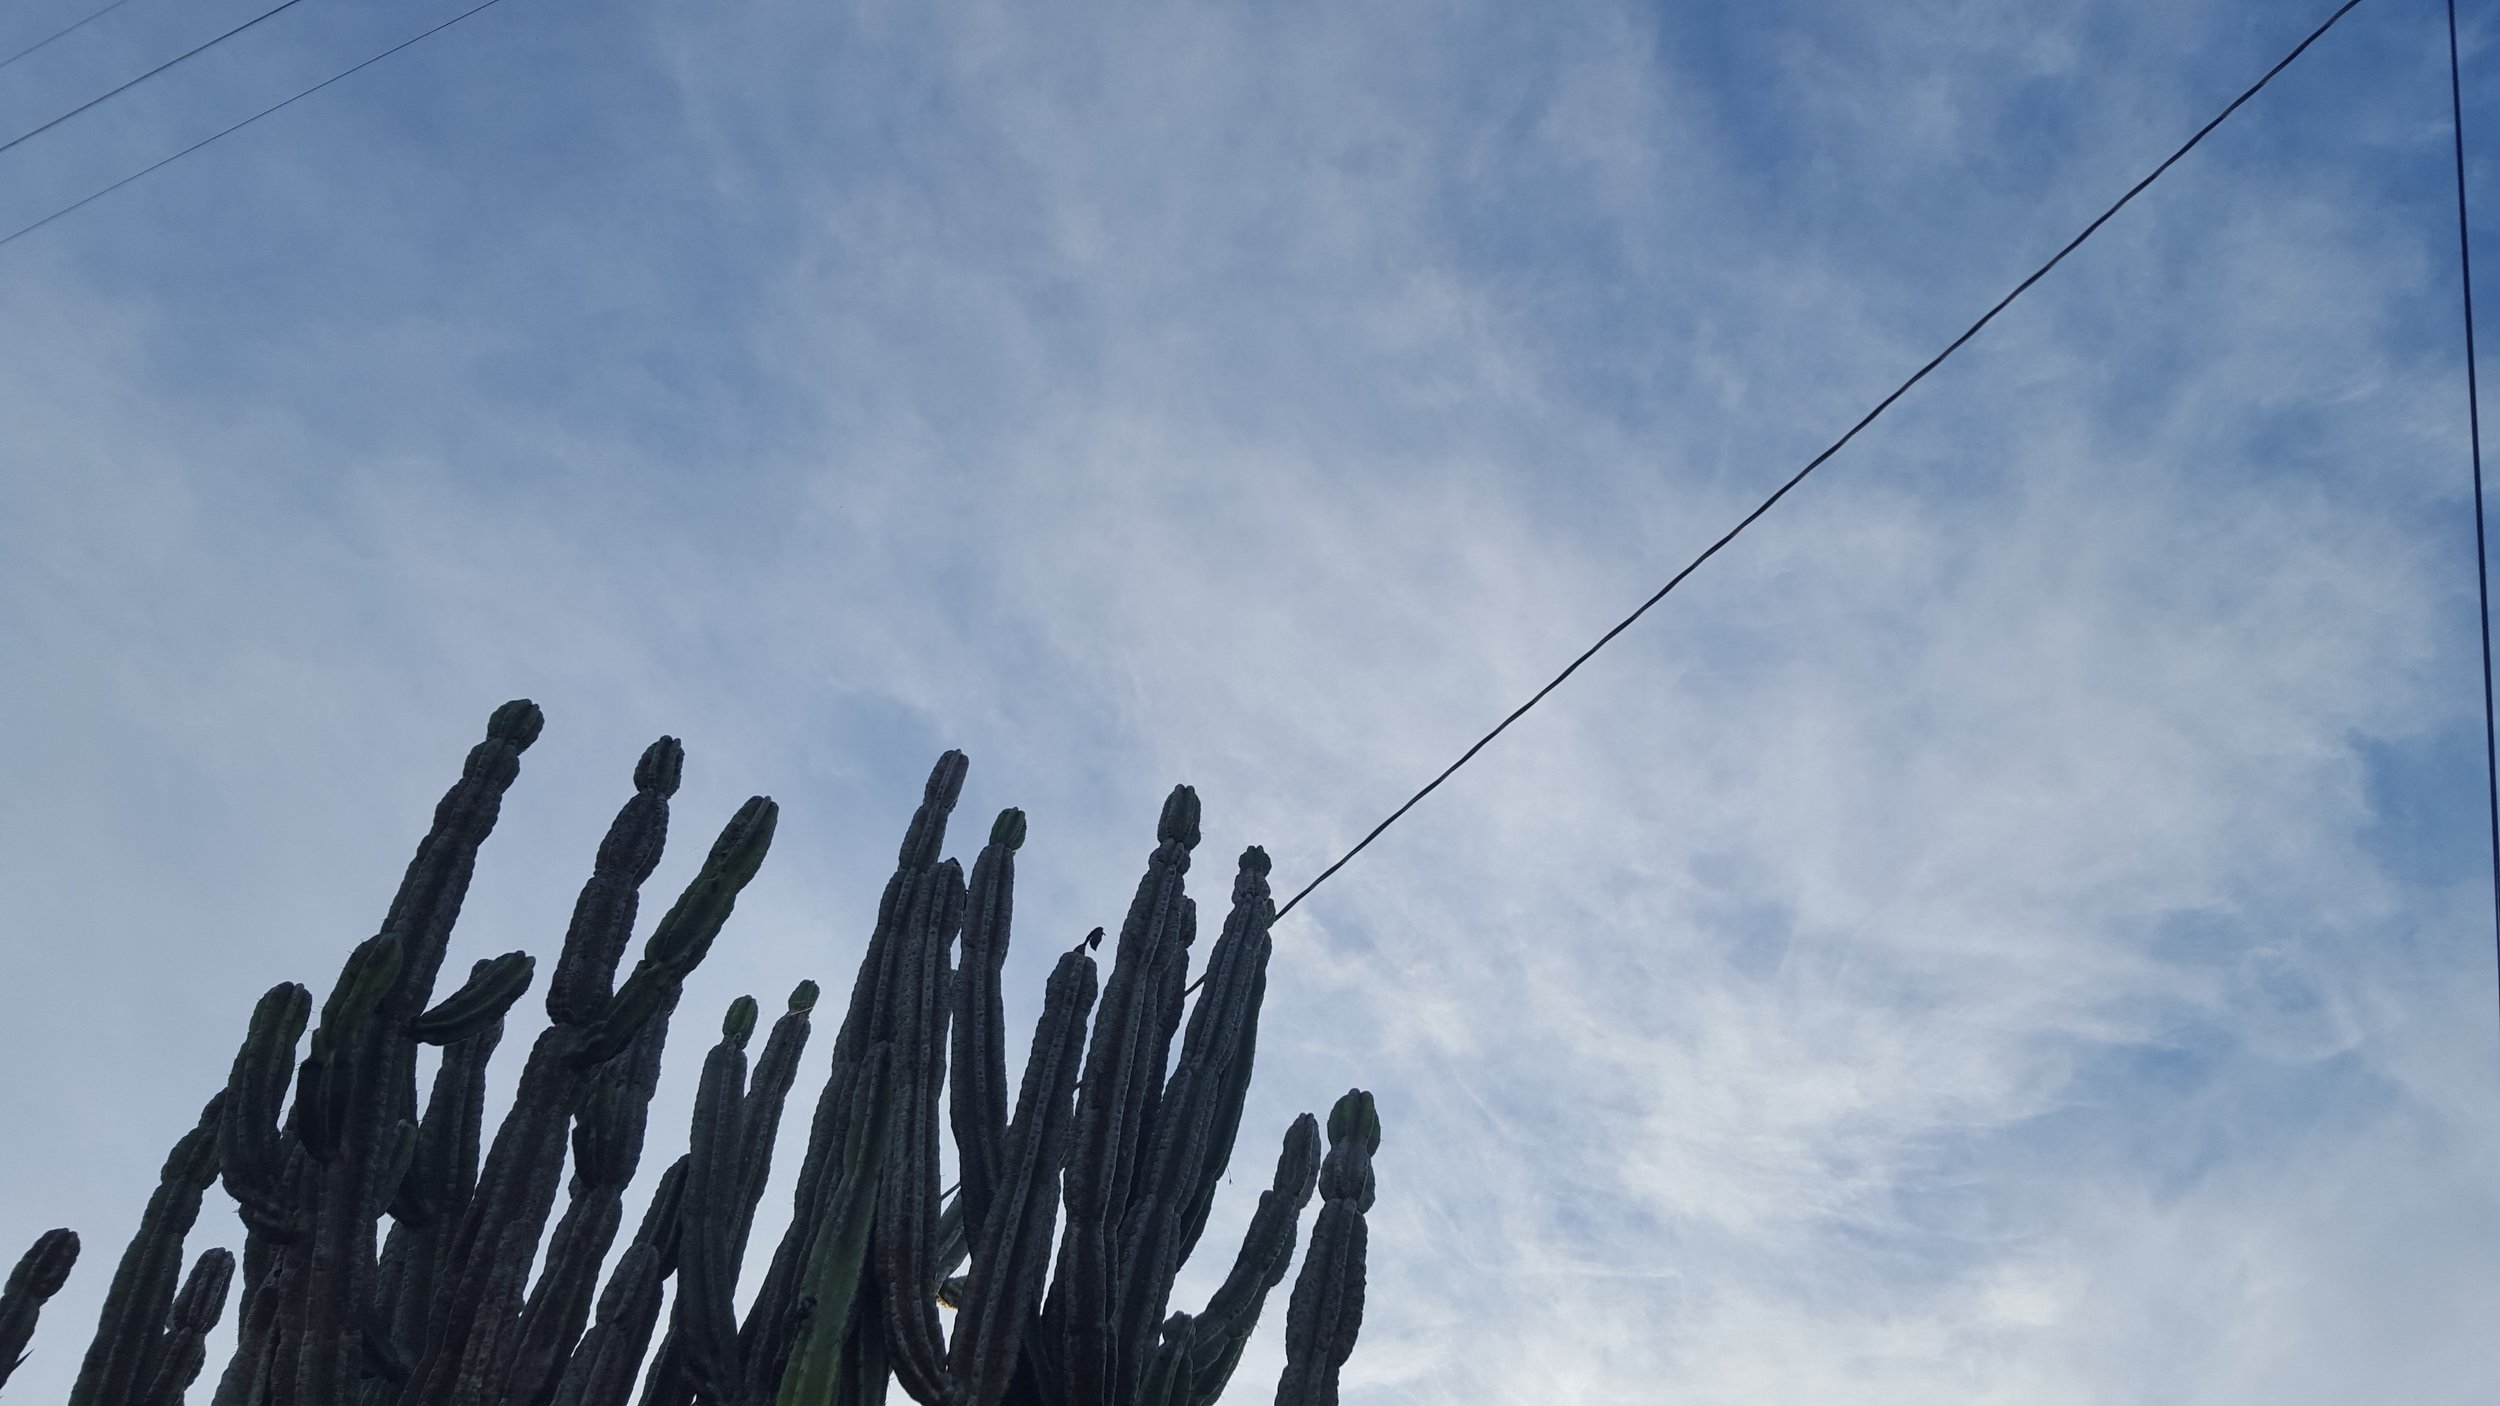 Image Description: The arms of a cacti reach for the sky. Wispy clouds over a light blue sky are in the background.